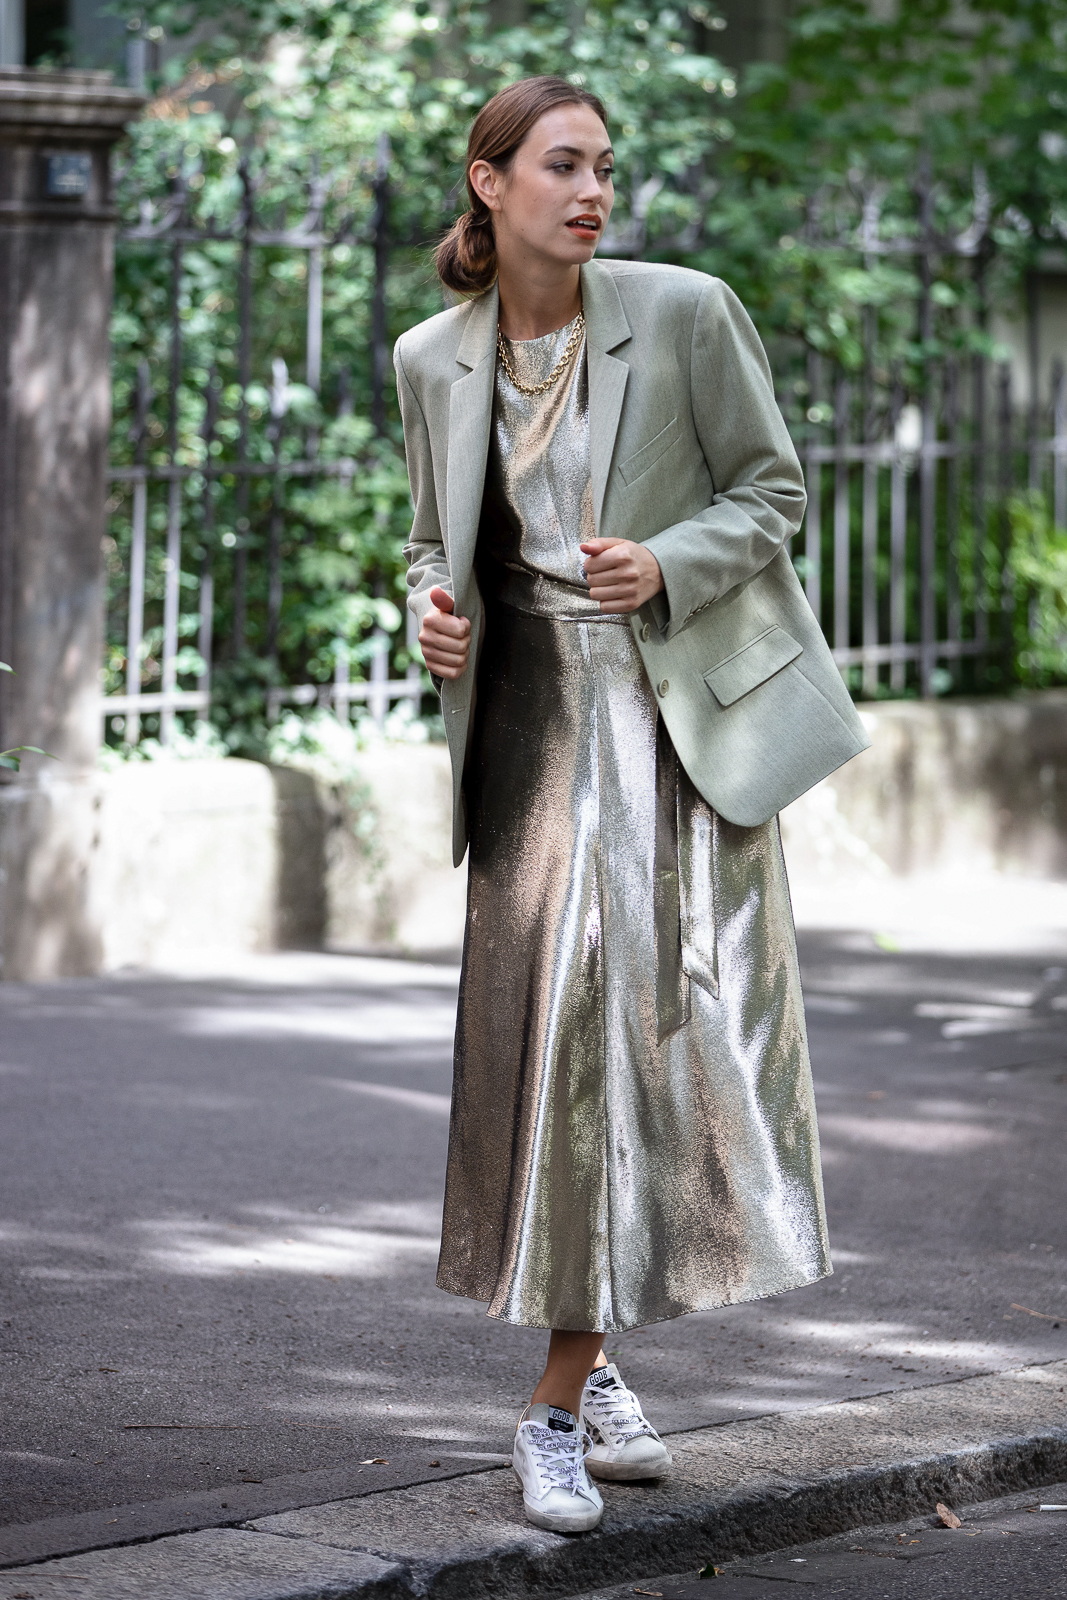 Daily Outfits, Indress, Laura Lombardi, Golden Goose, Vestibule, Zurich